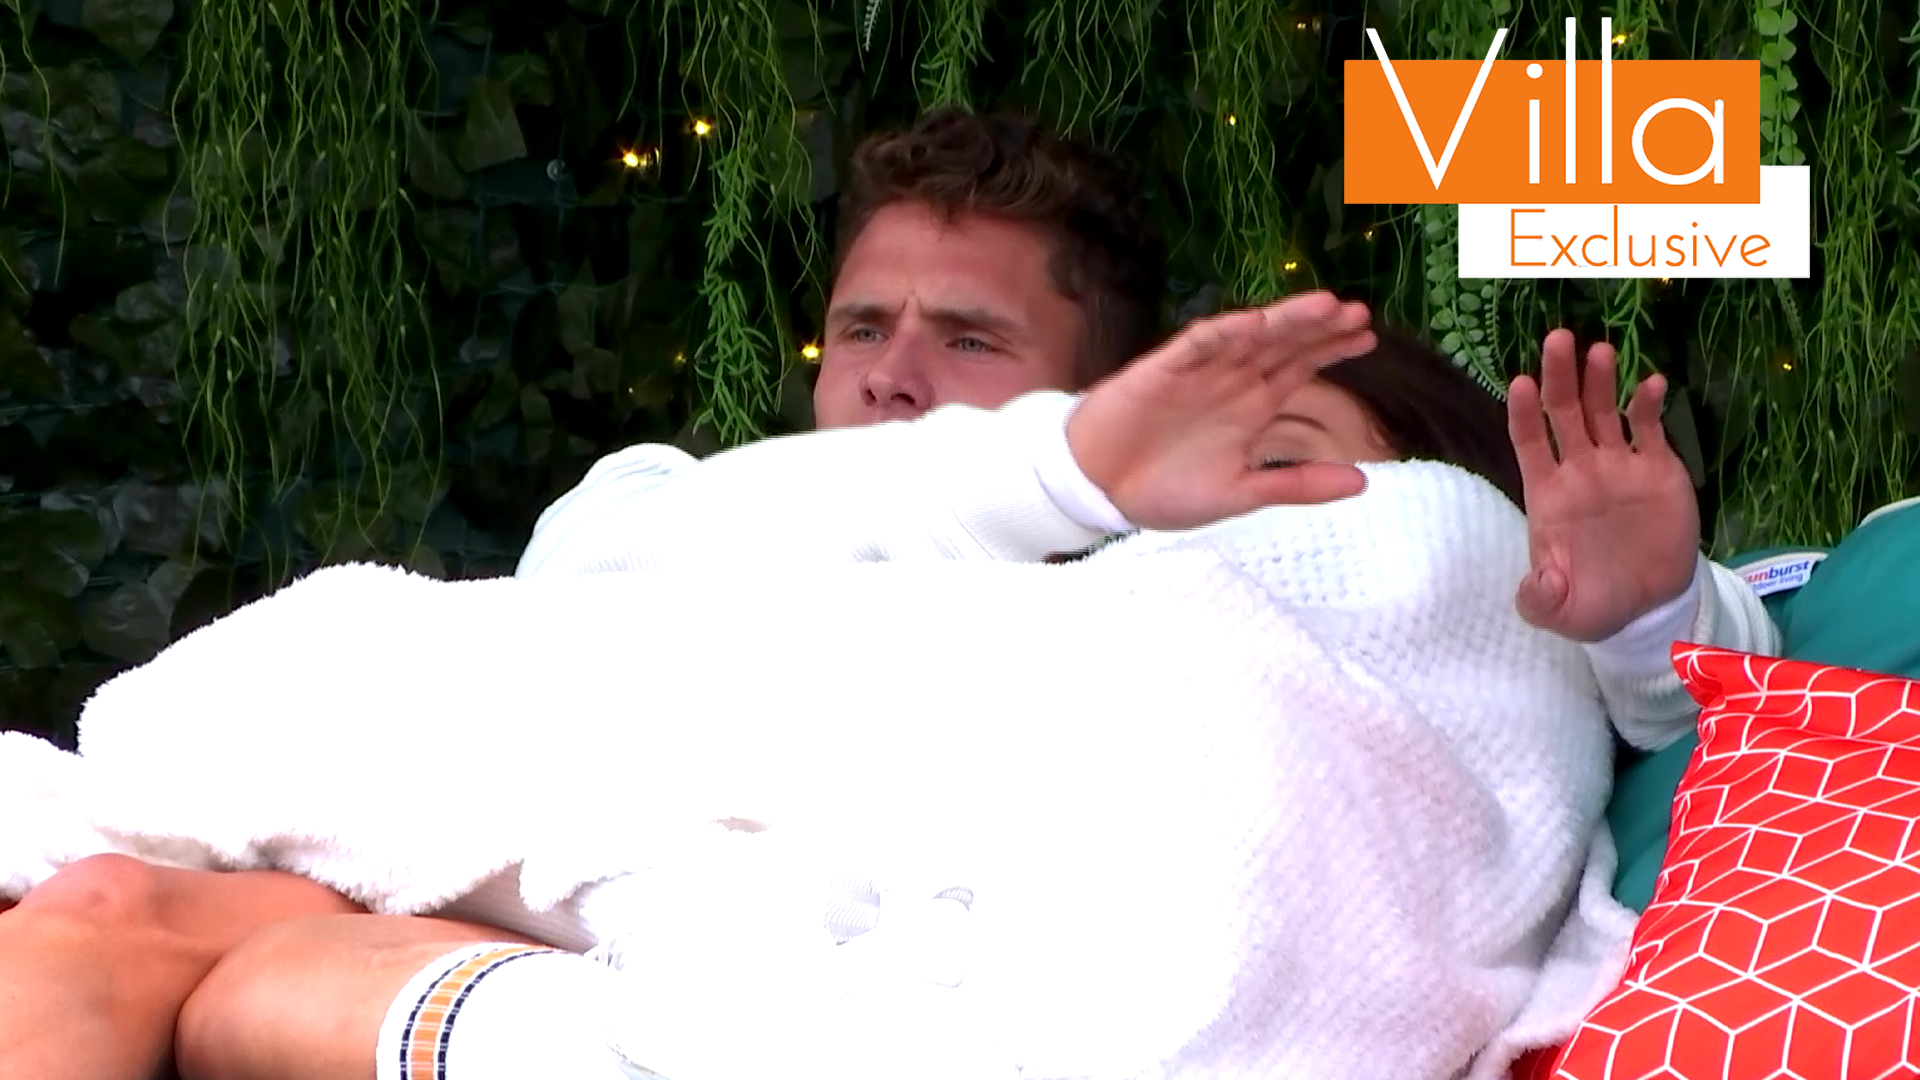 Exclusive: Rachael and Chris are 'attacked' during a romantic moment